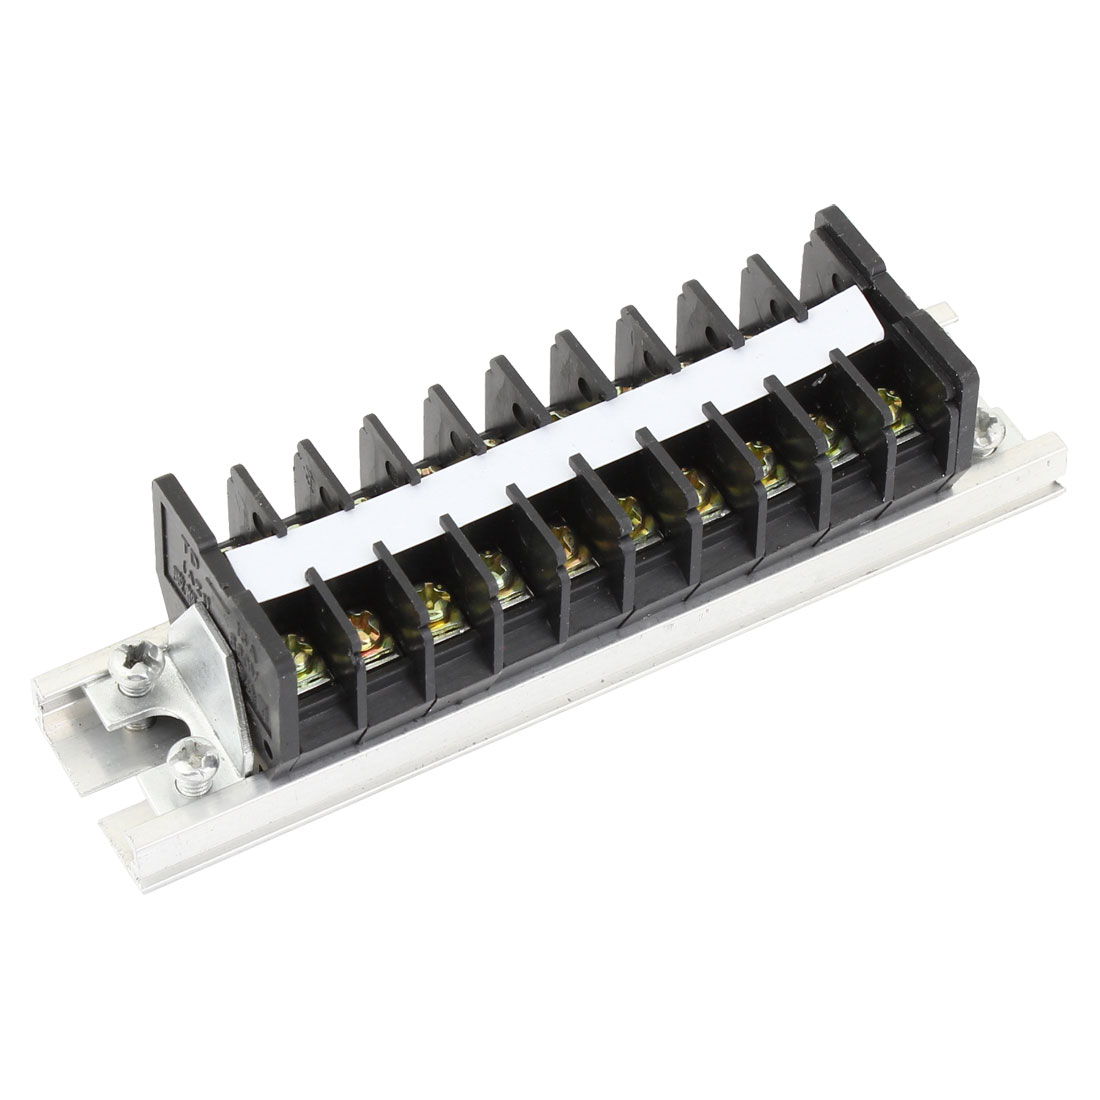 660V 15A Double Rows 10P 10 Positions Barrier Strip Screw Terminal Block